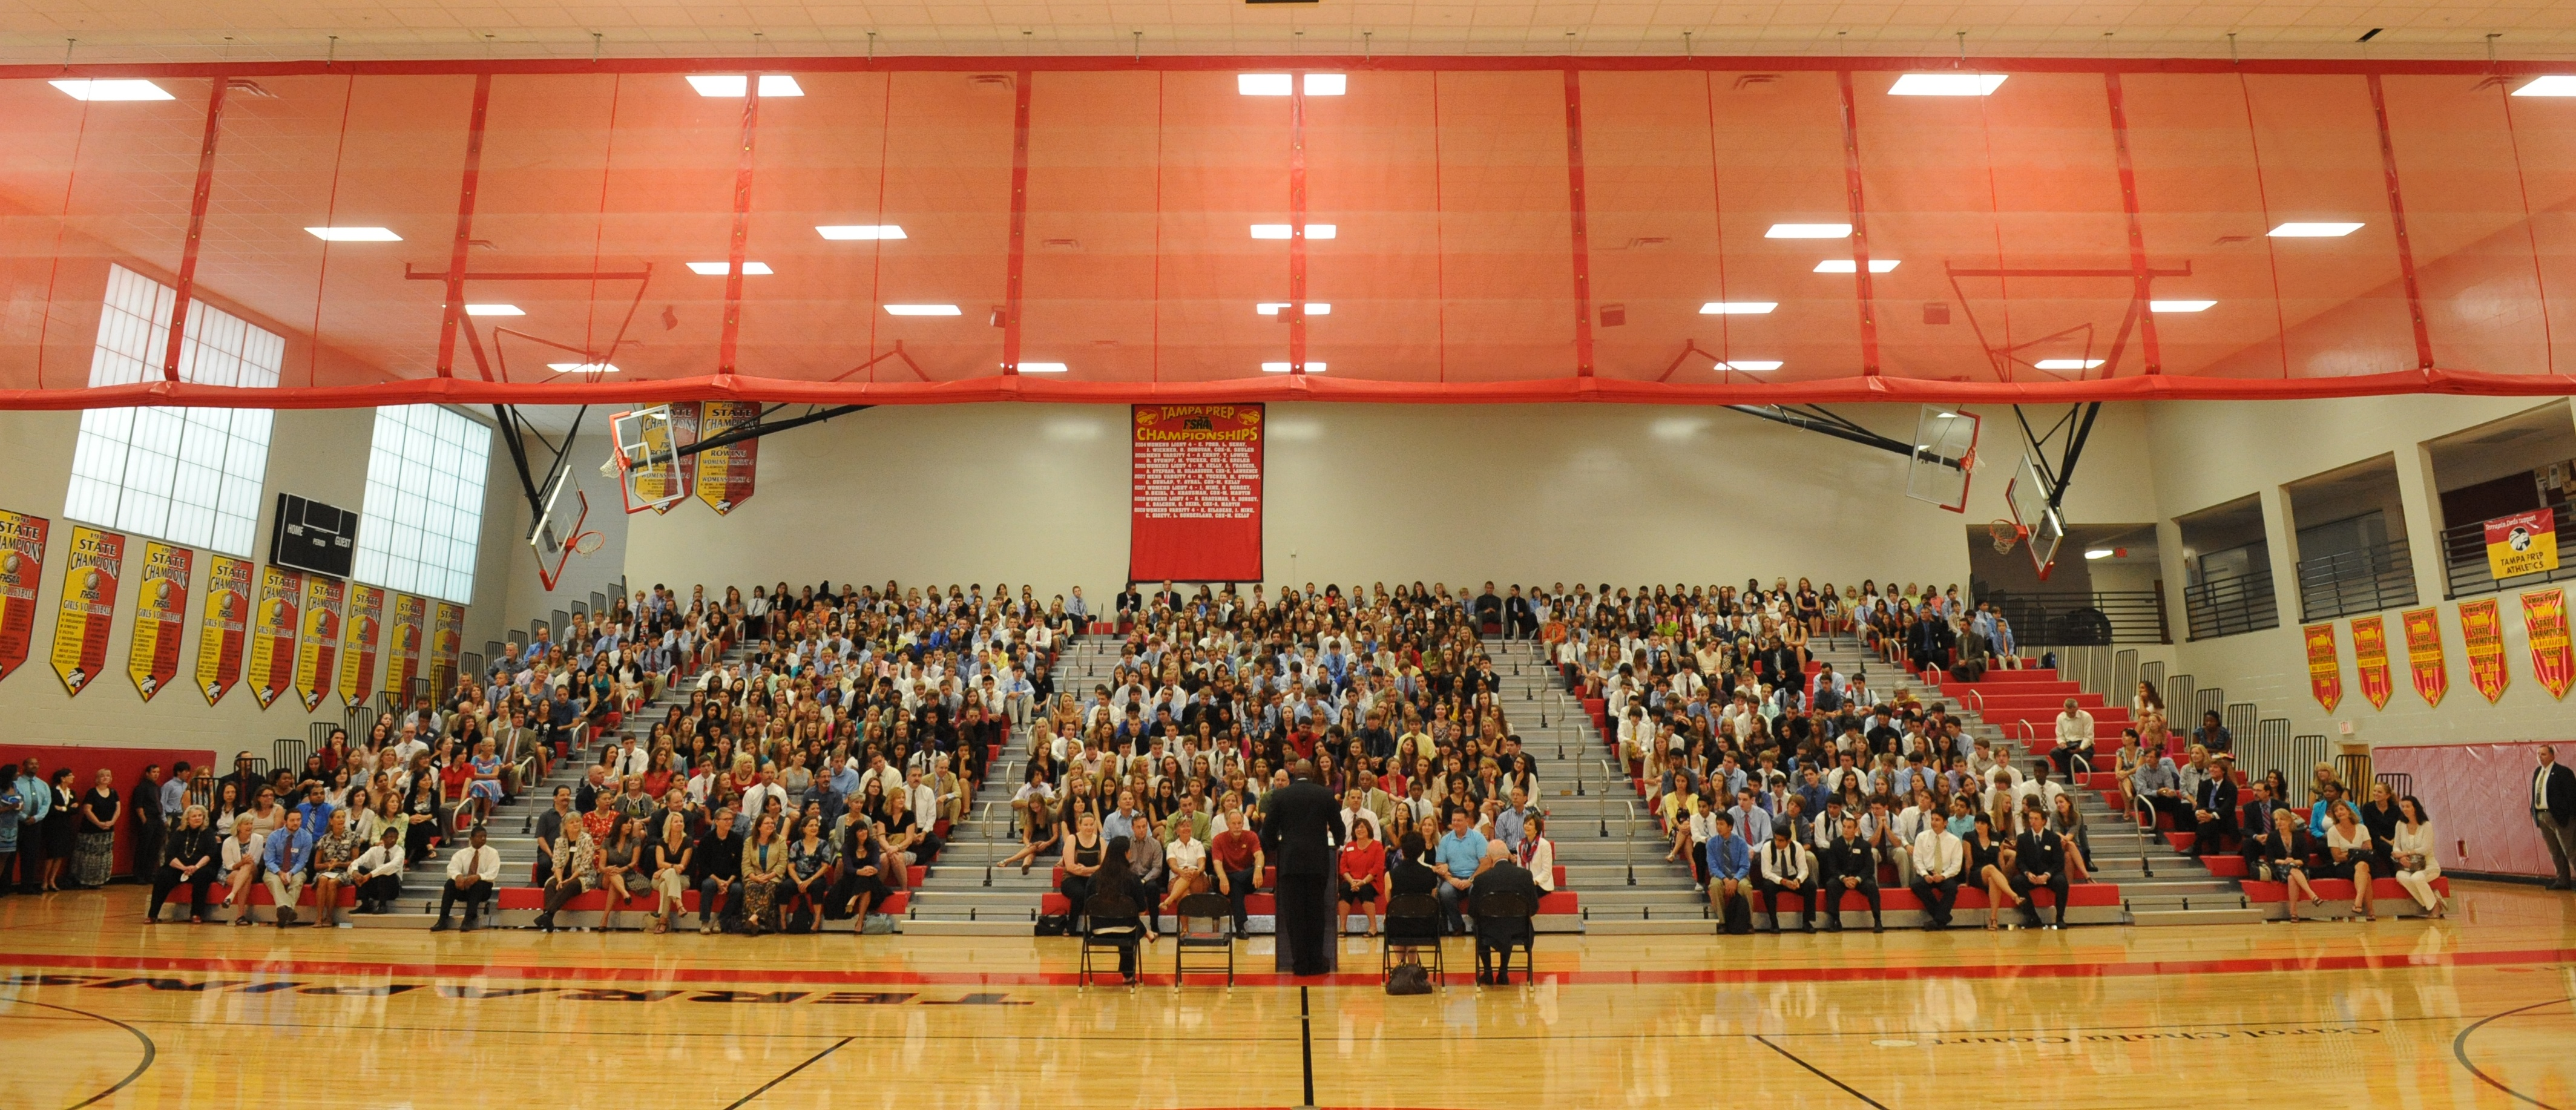 Opening Convocation in the gymnasium